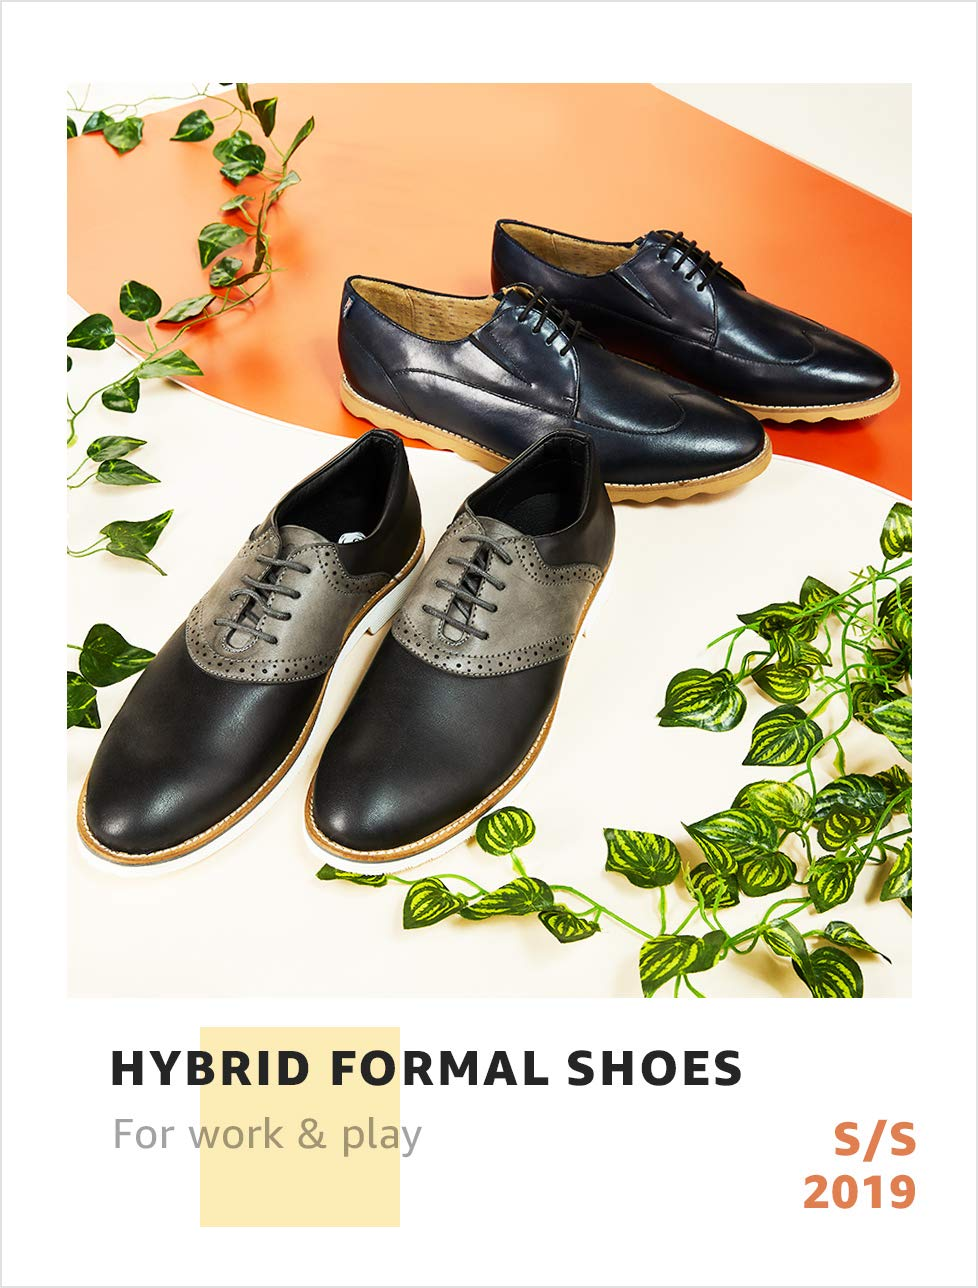 Hybrid formal shoes